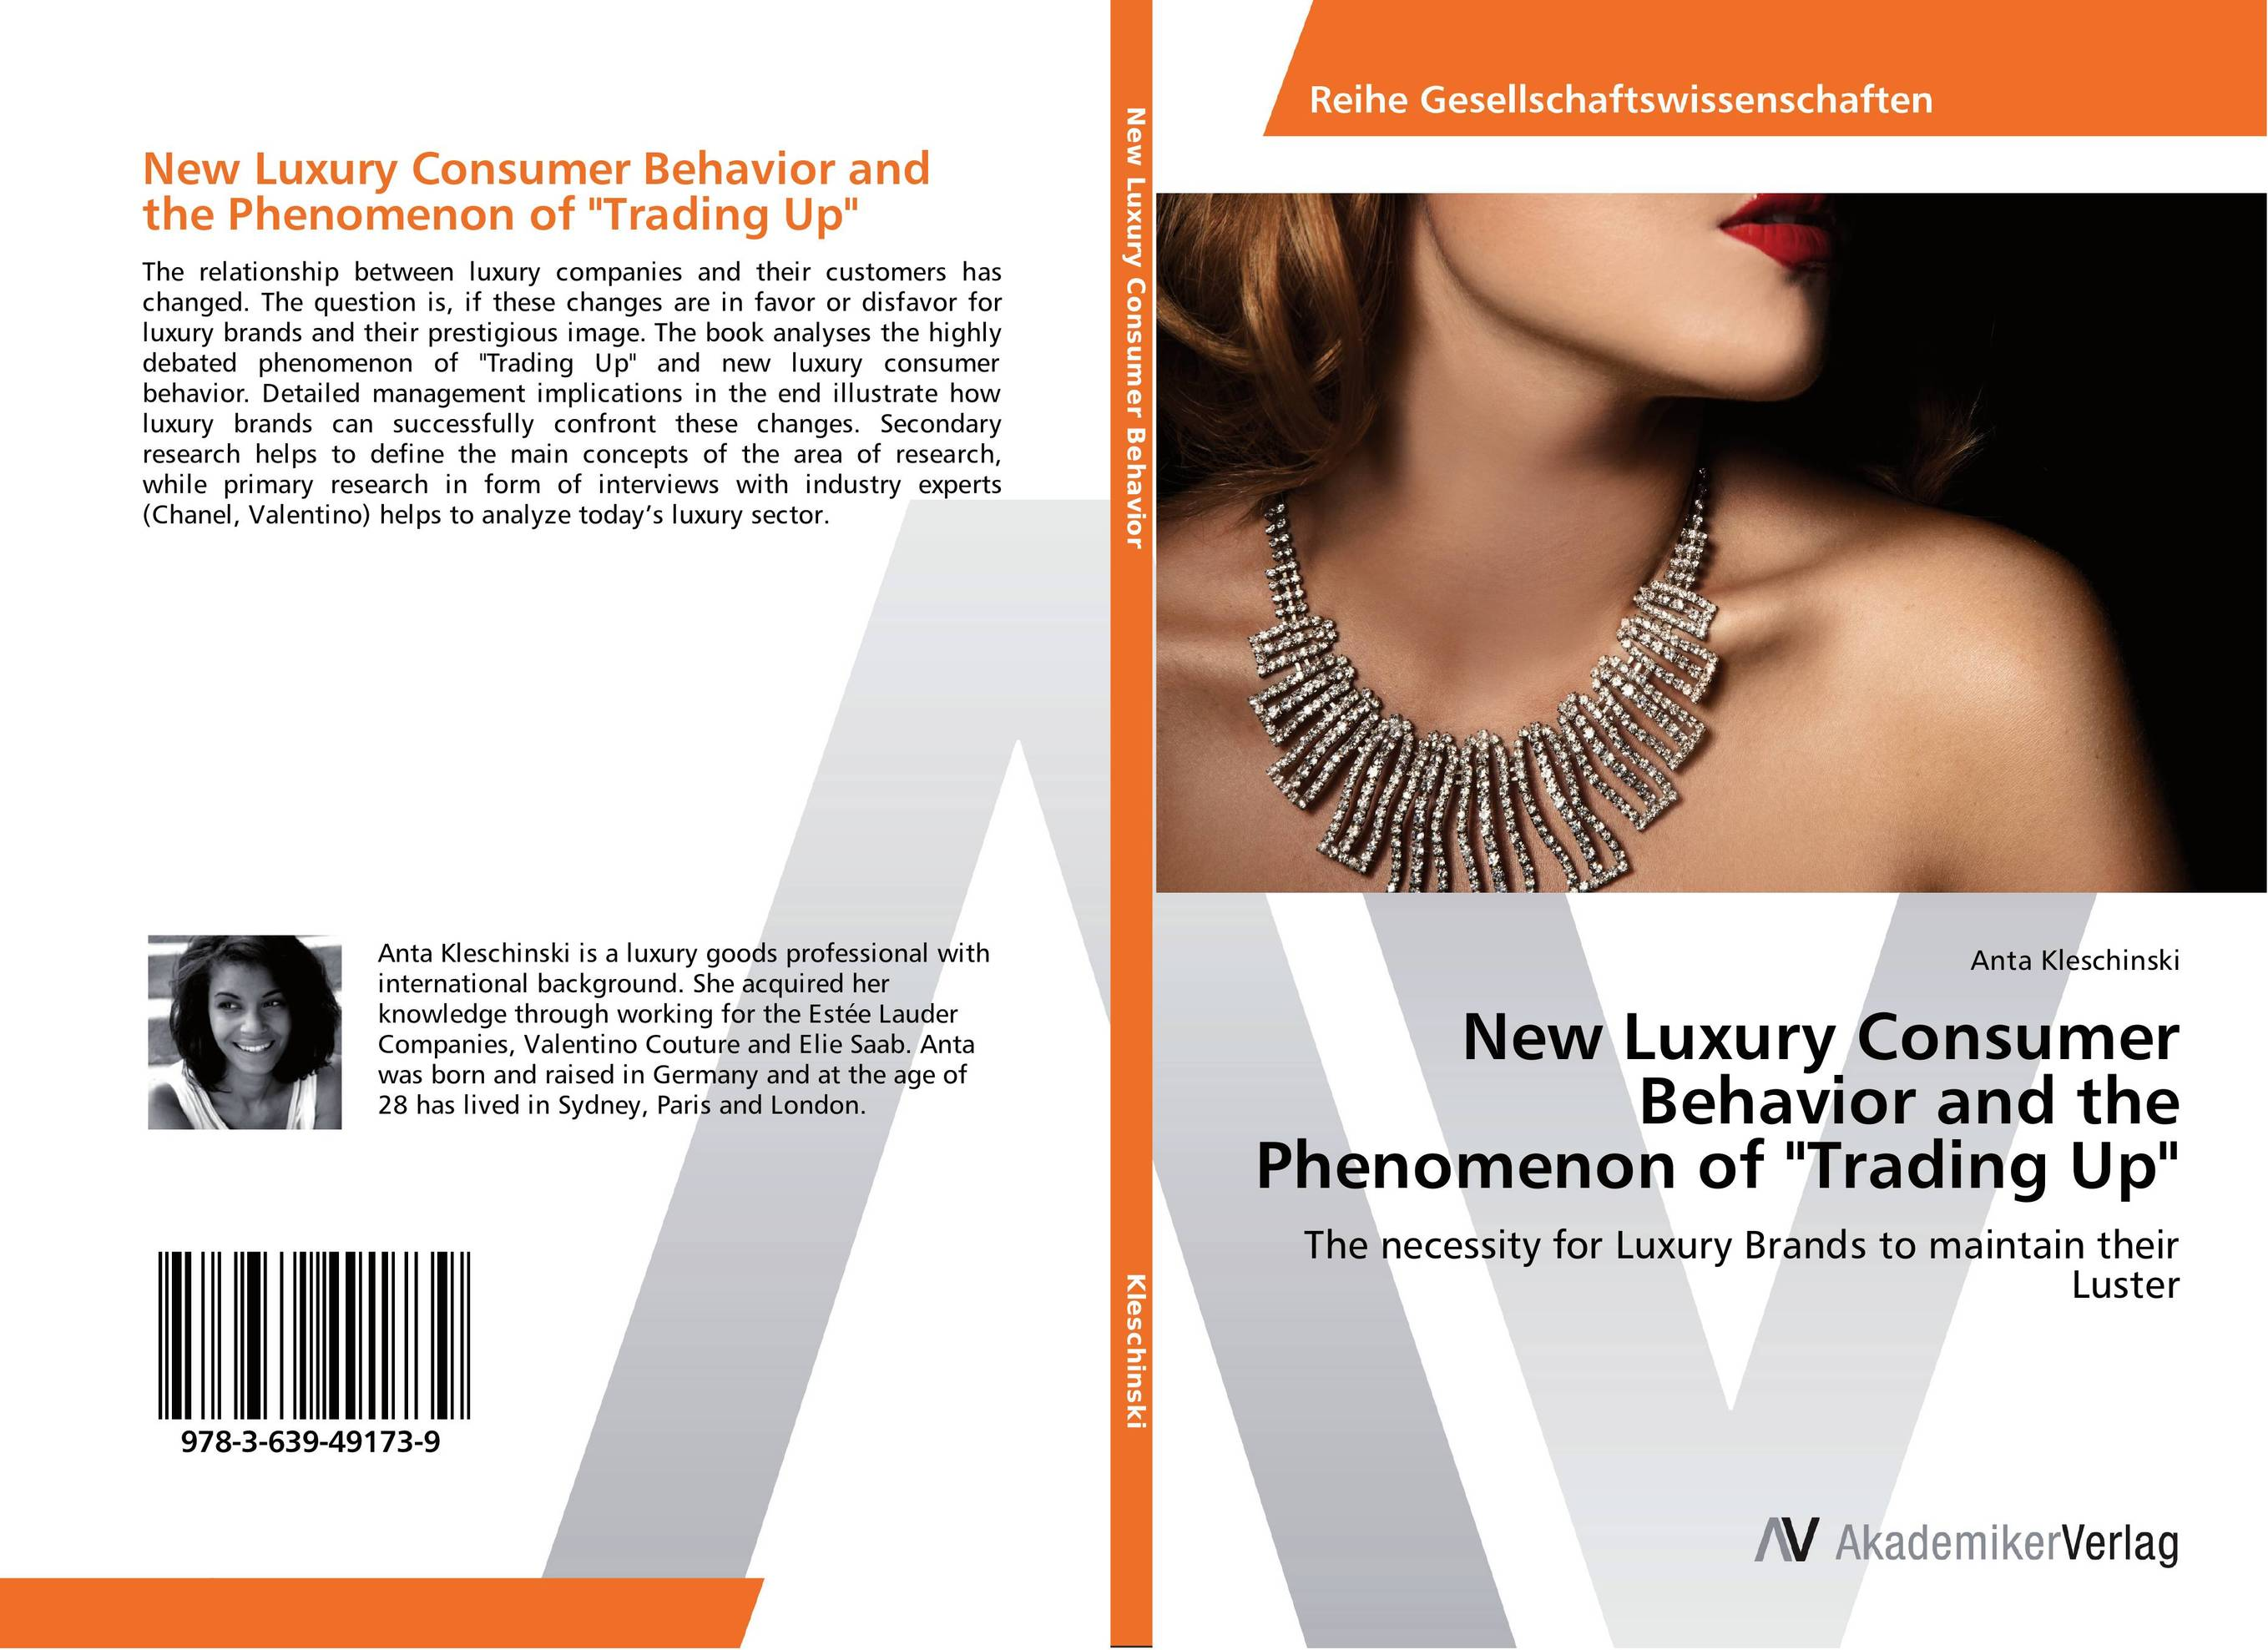 New Luxury Consumer Behavior and the Phenomenon of Trading Up michel chevalier luxury retail management how the world s top brands provide quality product and service support